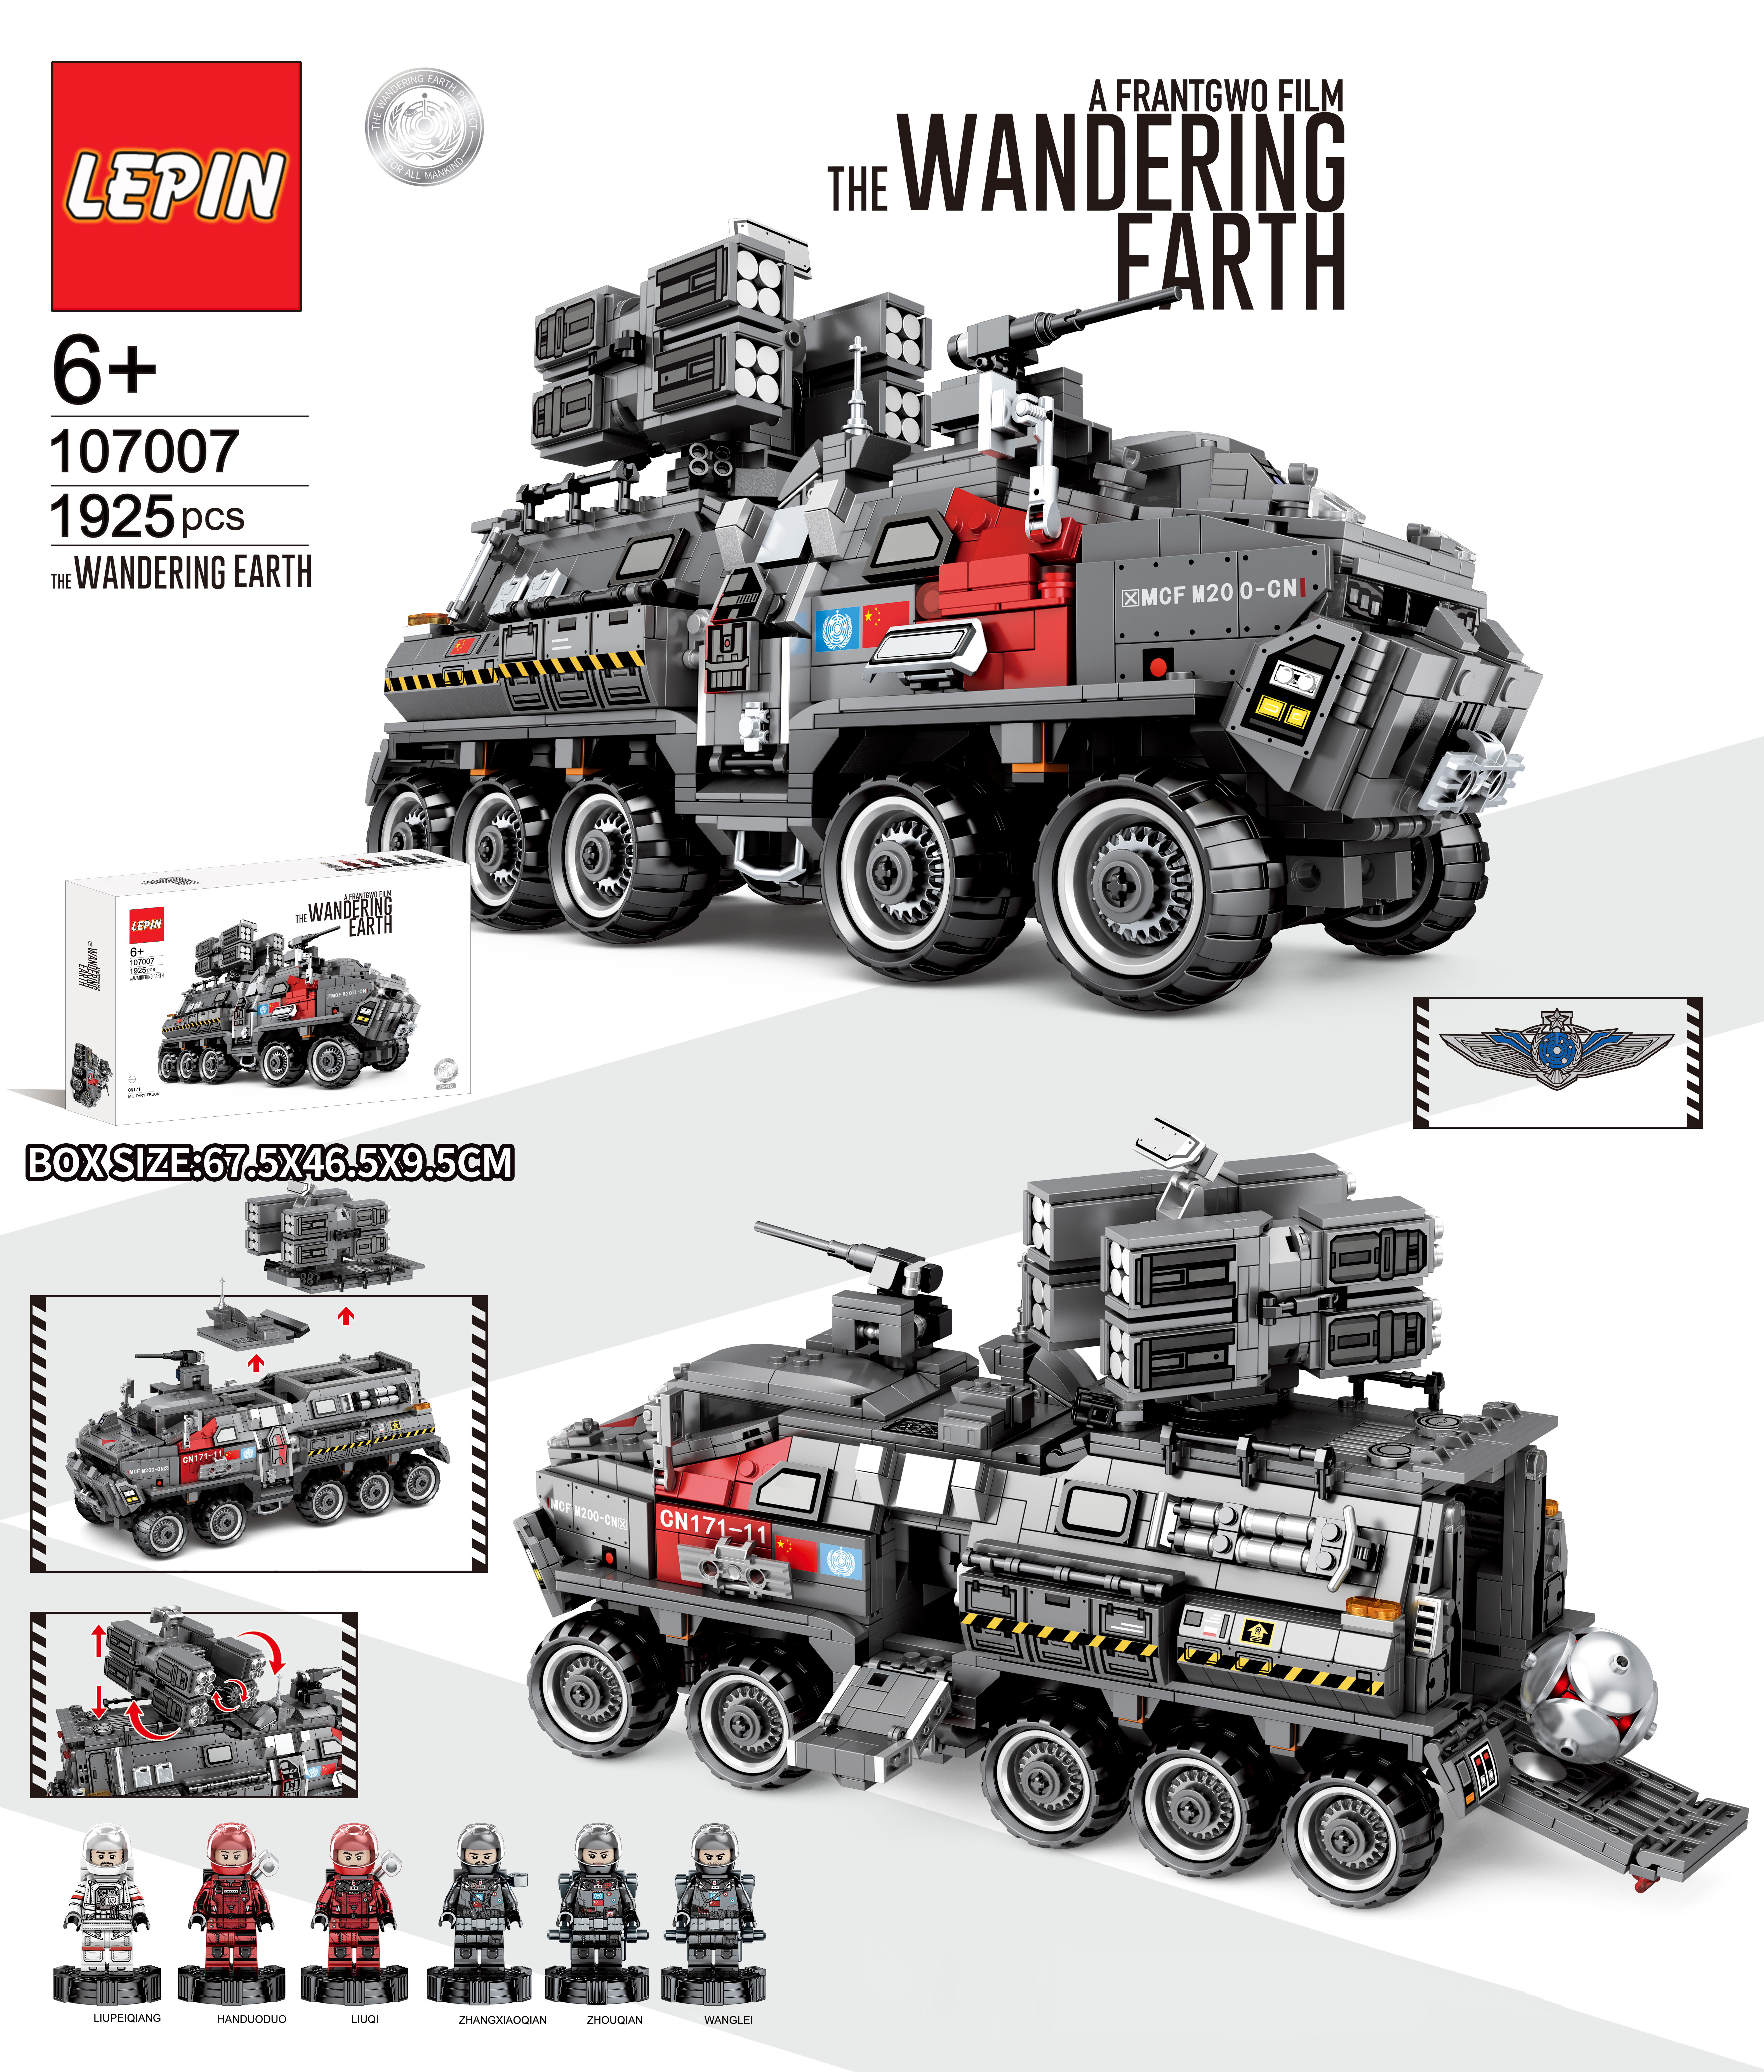 LEPIN New Wandering Earth CN171 Troop Carrier Military fit legoings Swat Military Technic Army Truck Building Blocks Bricks toys gift